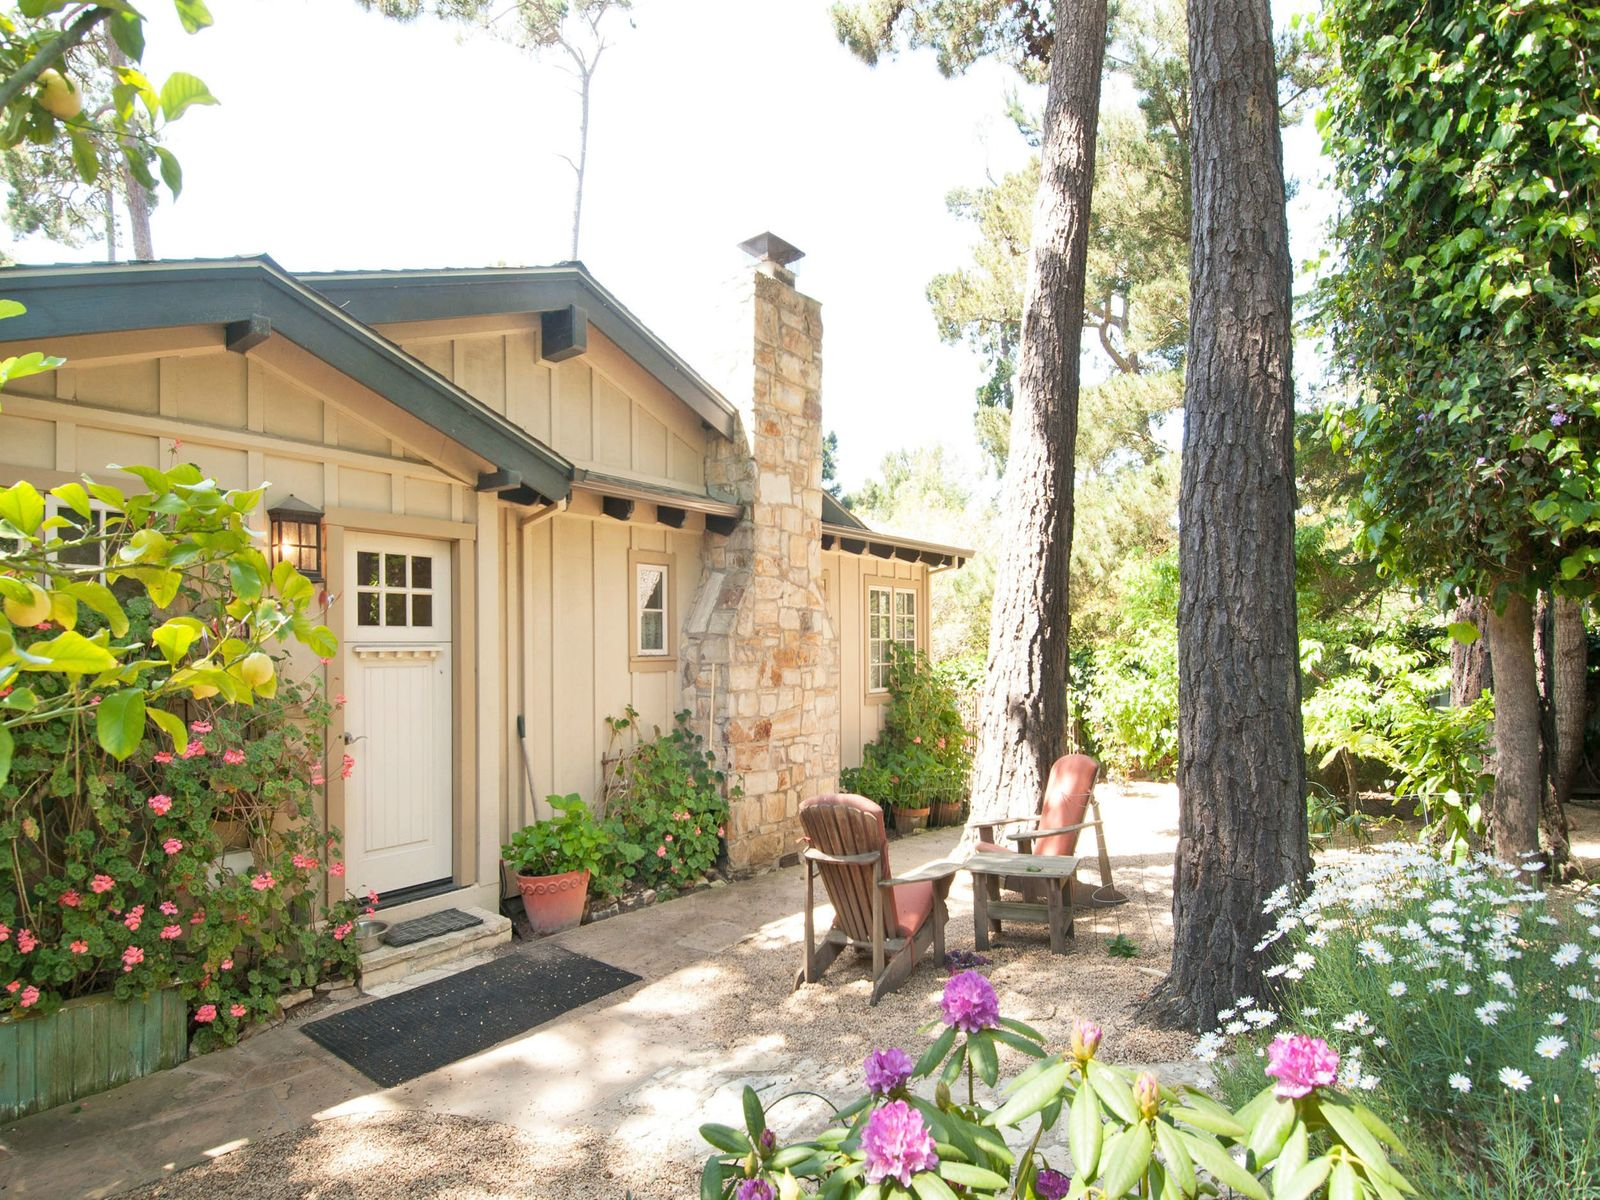 Carmel-By-The-Sea Opportunity, Carmel-By-The-Sea CA Single Family Home - Monterey Real Estate